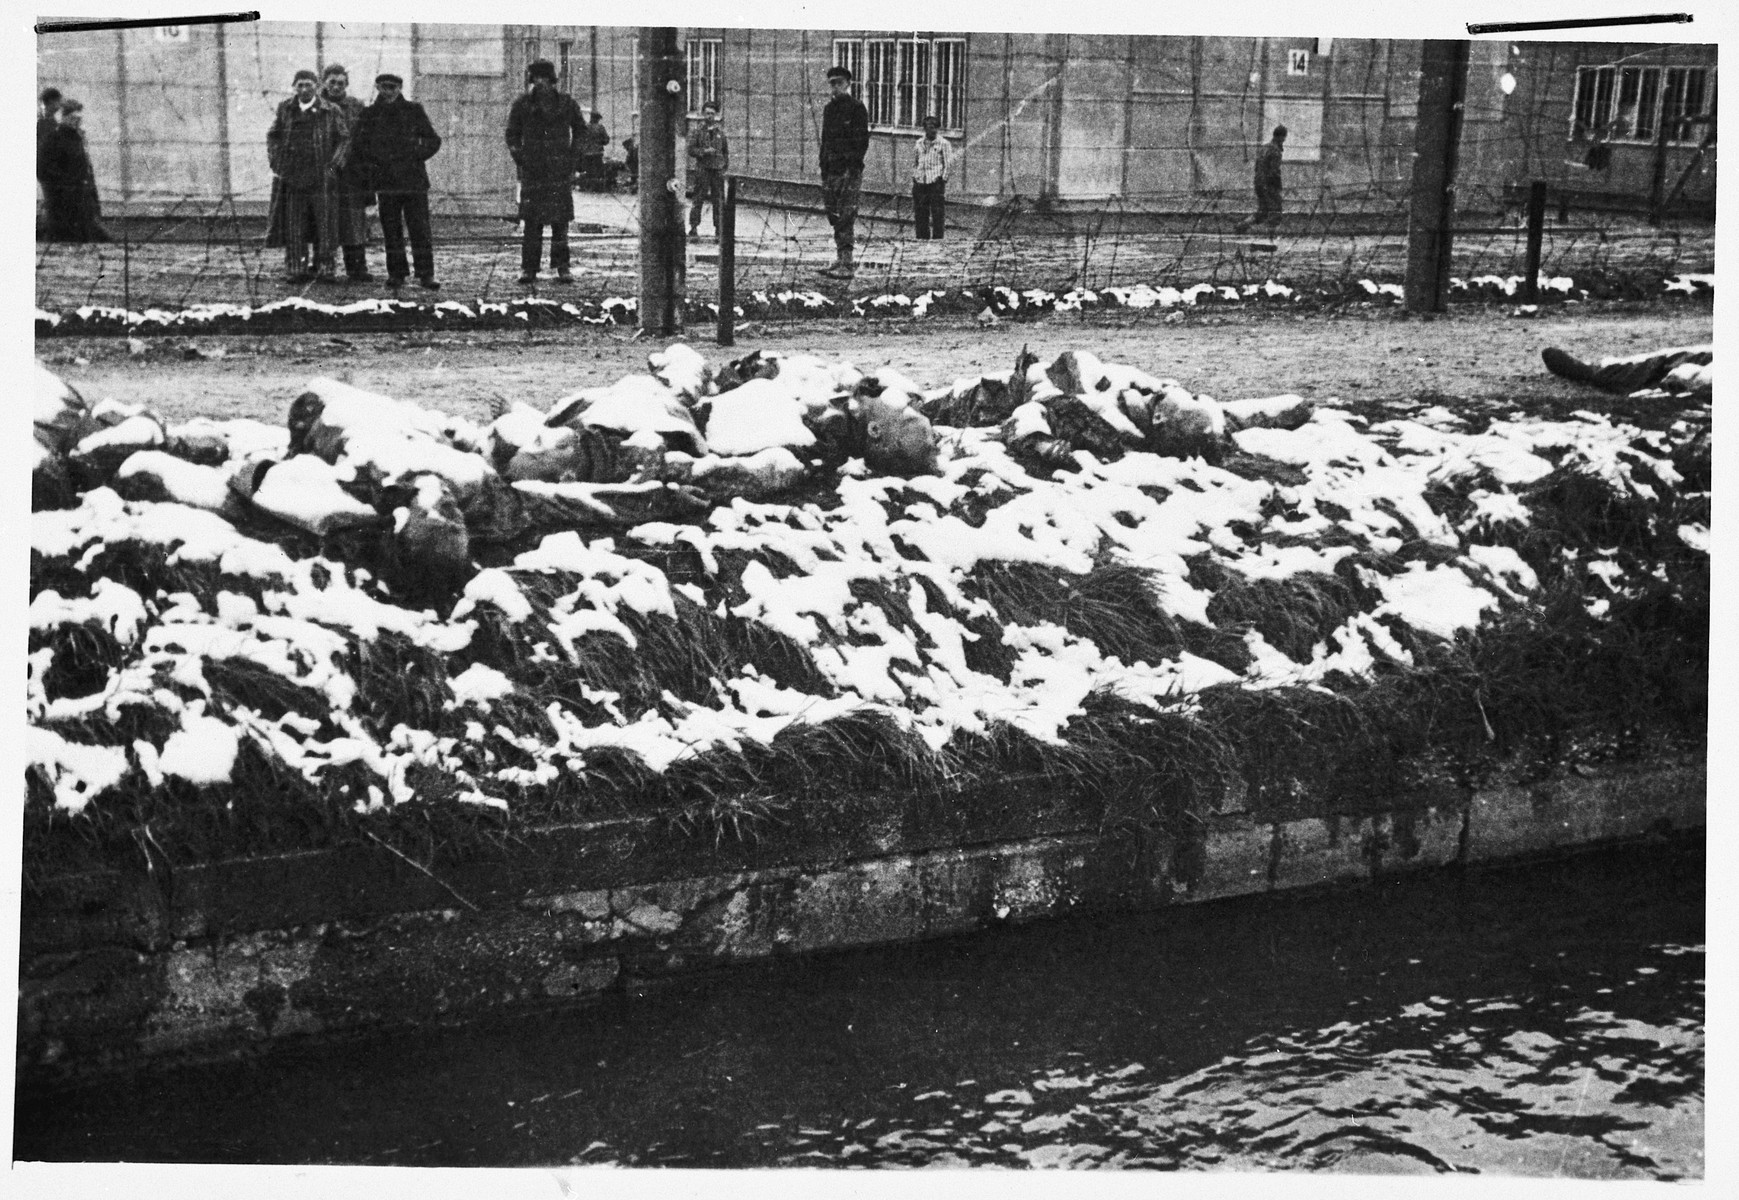 Survivors stare at a line of corpses partially hidden by snow lying next to the Dachau moat; [these might be former SS guards killied in revenge.]